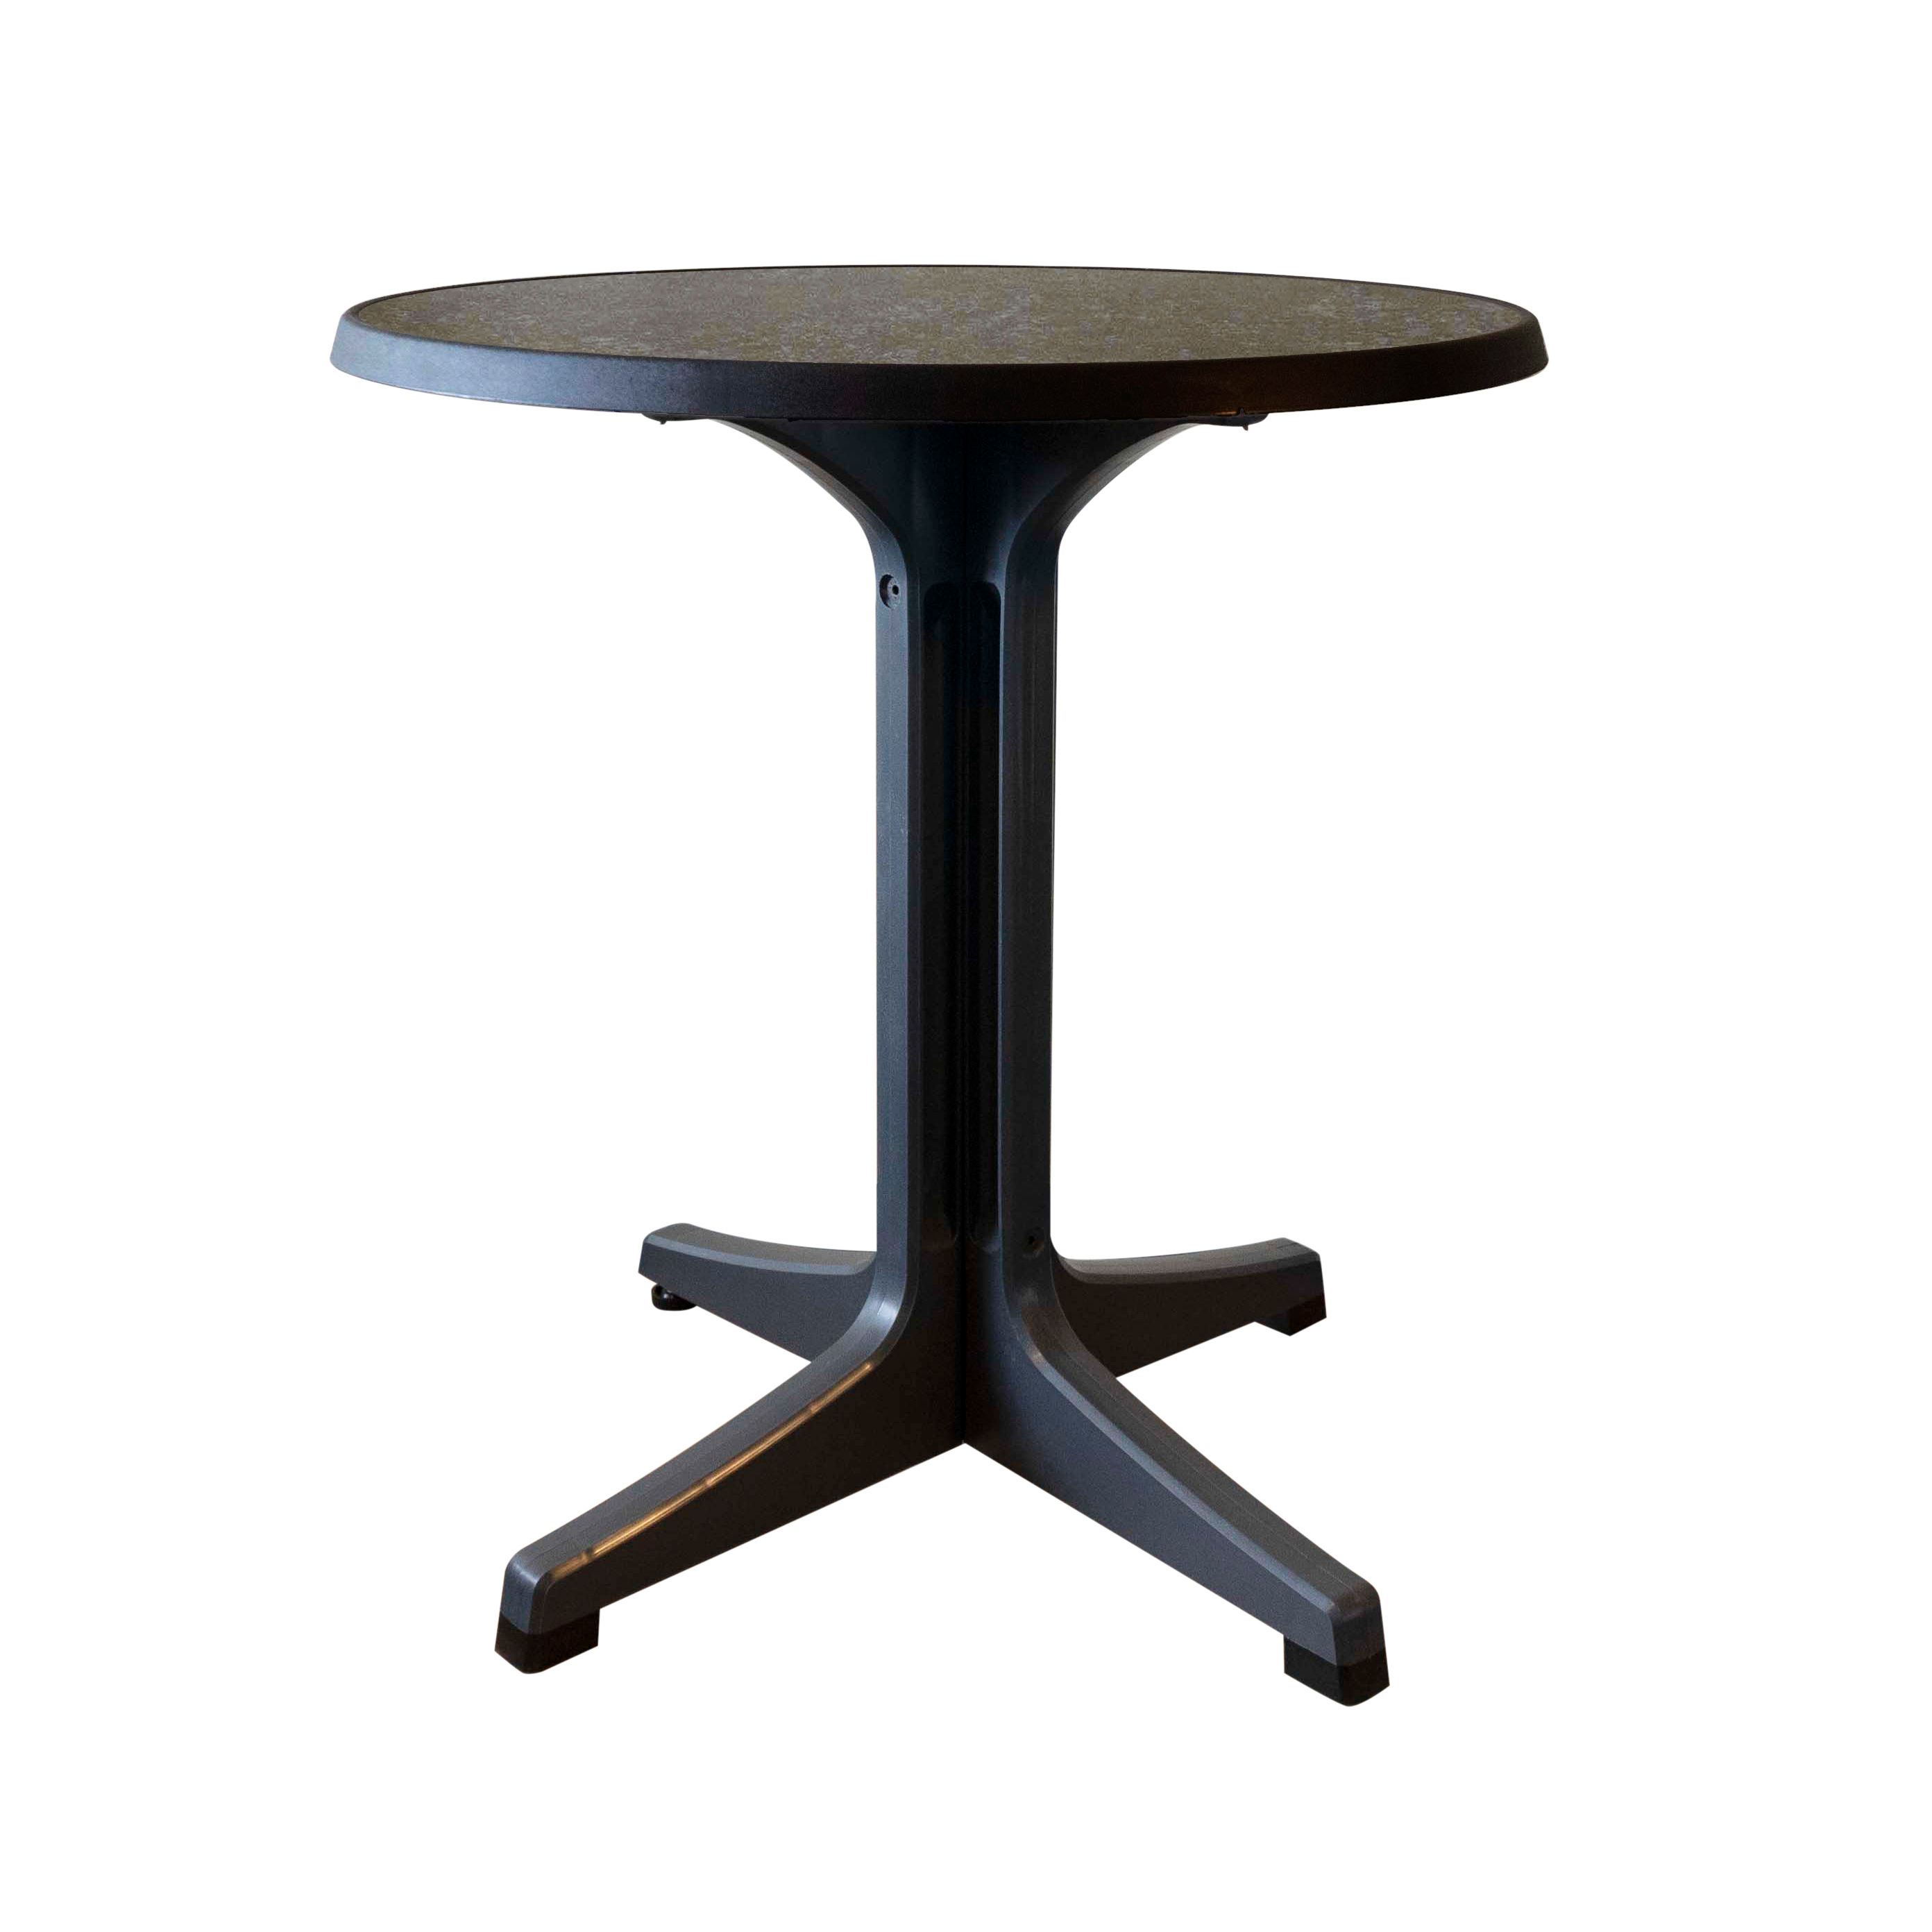 Grosfillex US287744 table, outdoor